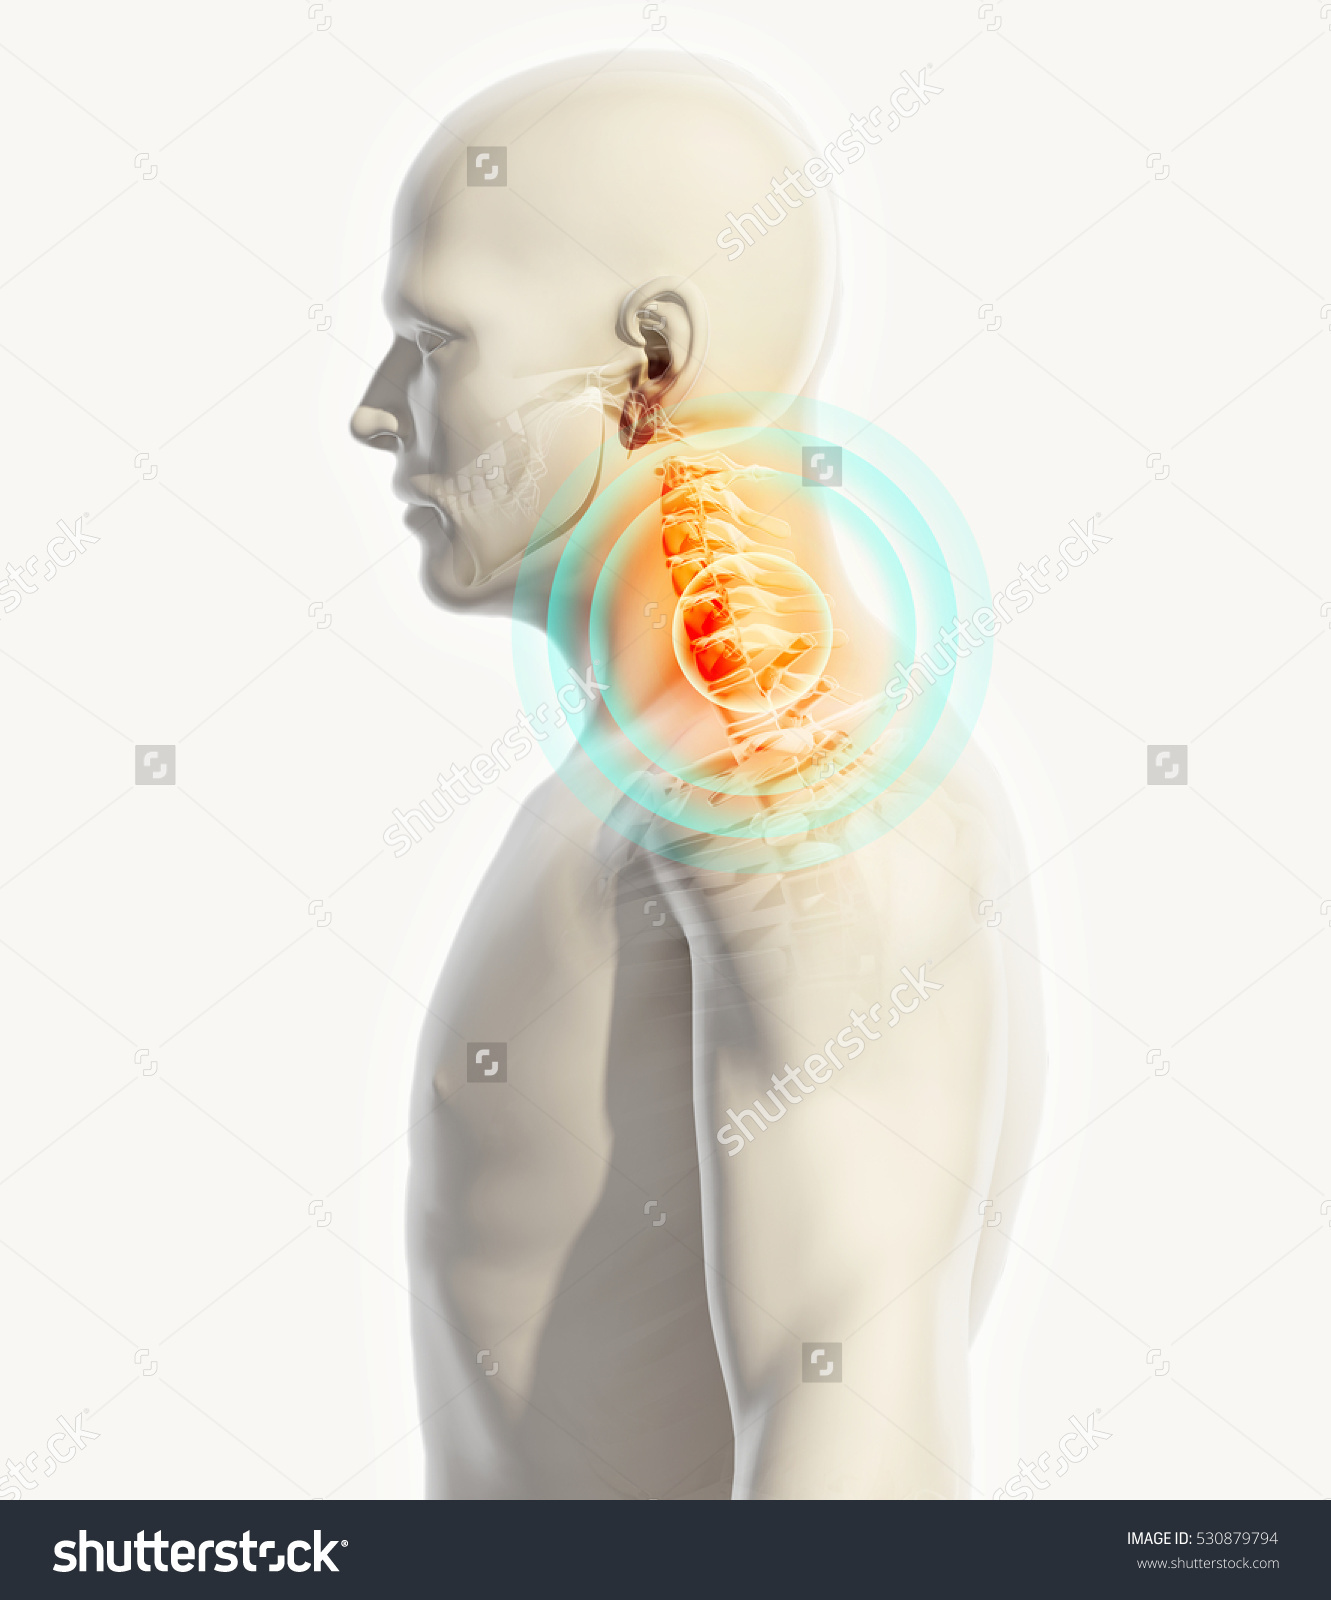 stock-photo--d-illustration-neck-painful-cervica-spine-skeleton-x-ray-medical-concept-530879794.jpg